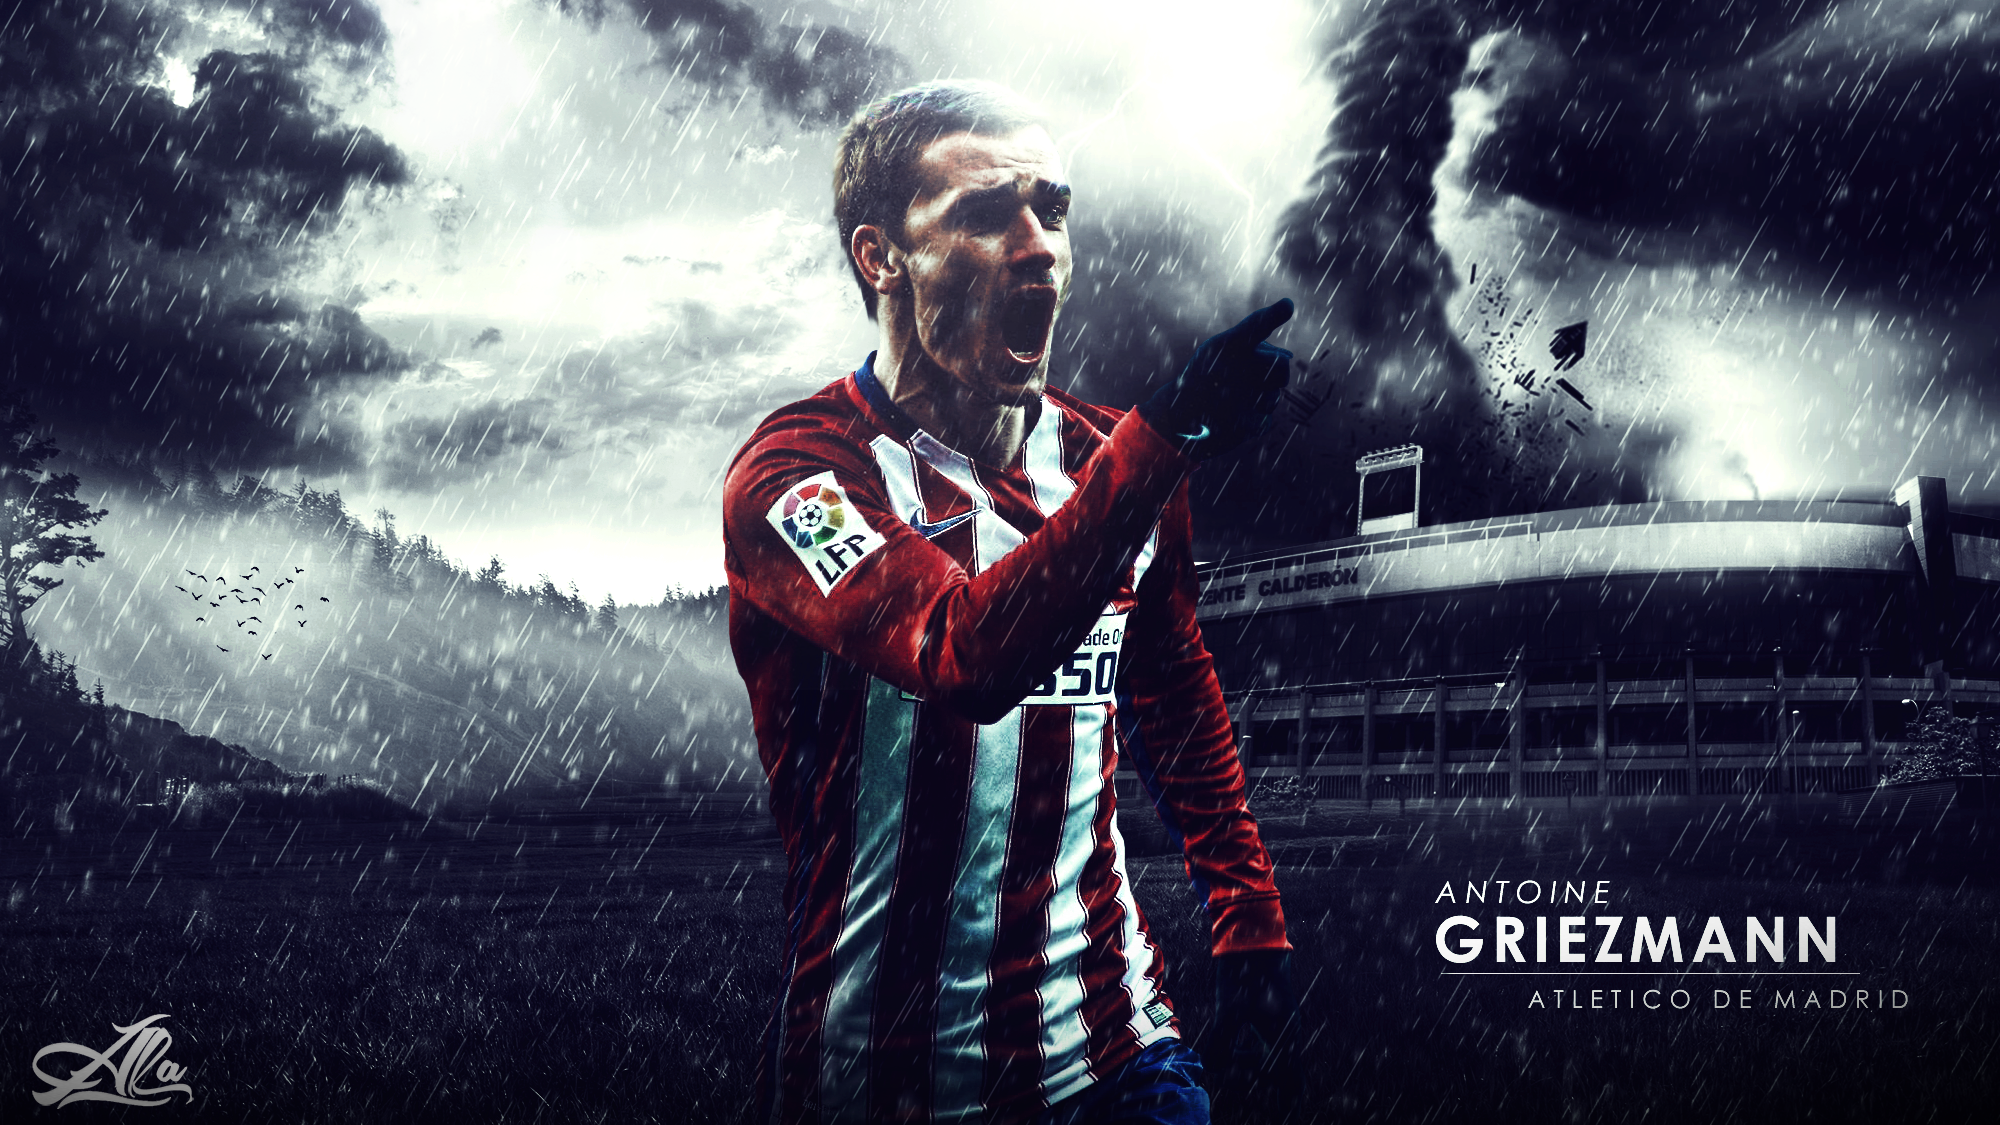 Antoine griezmann atletico de madrid 15 2016 by designer antoine griezmann atletico de madrid 15 2016 by designer alateewish voltagebd Image collections